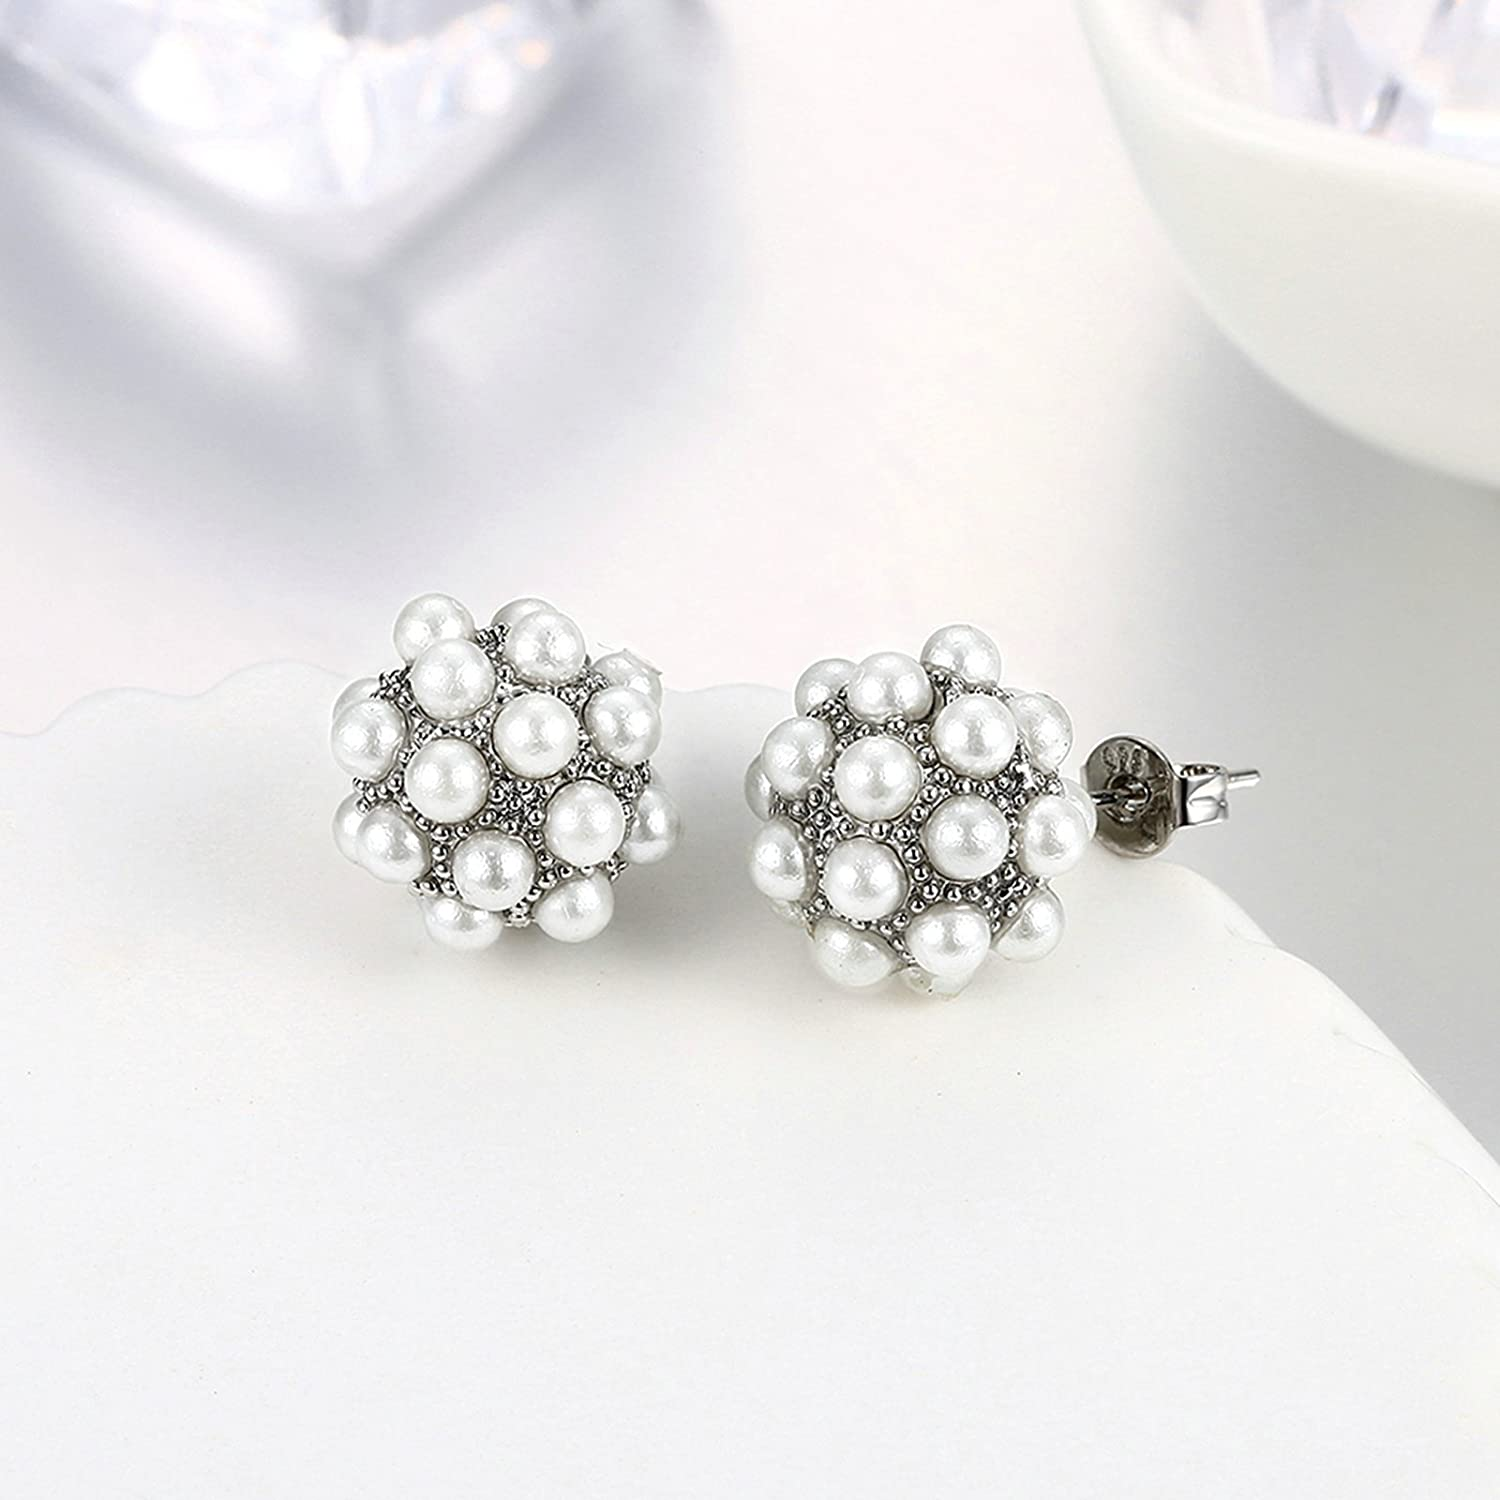 Gnzoe Jewelry 18K Silver Plated Stud Earrings Women Cluster Beads Faux Pearl Eco Friendly LSOQ8P